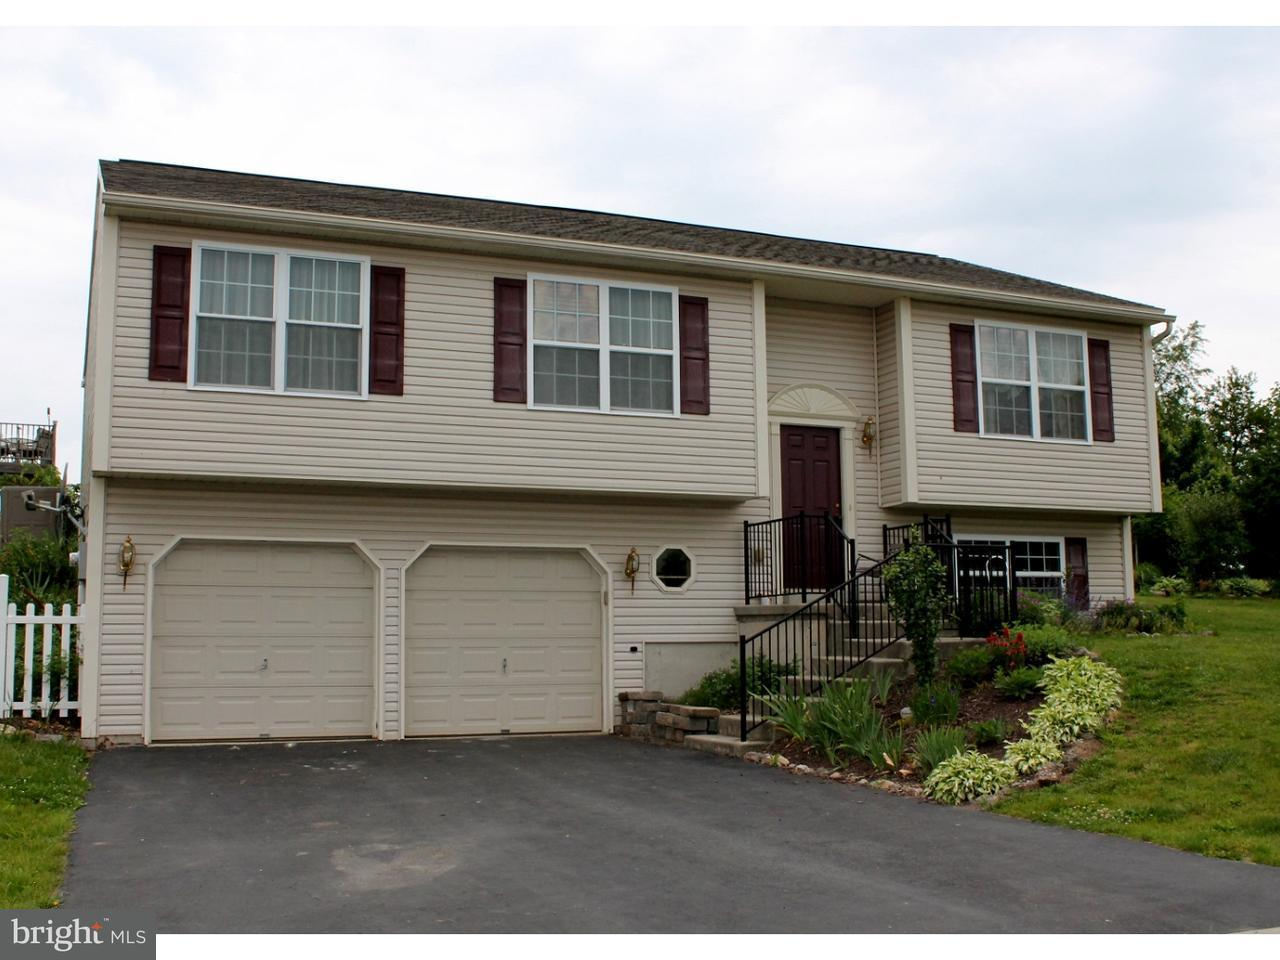 Single Family Home for Sale at 3 LOWLAND CV Pine Grove, Pennsylvania 17963 United States